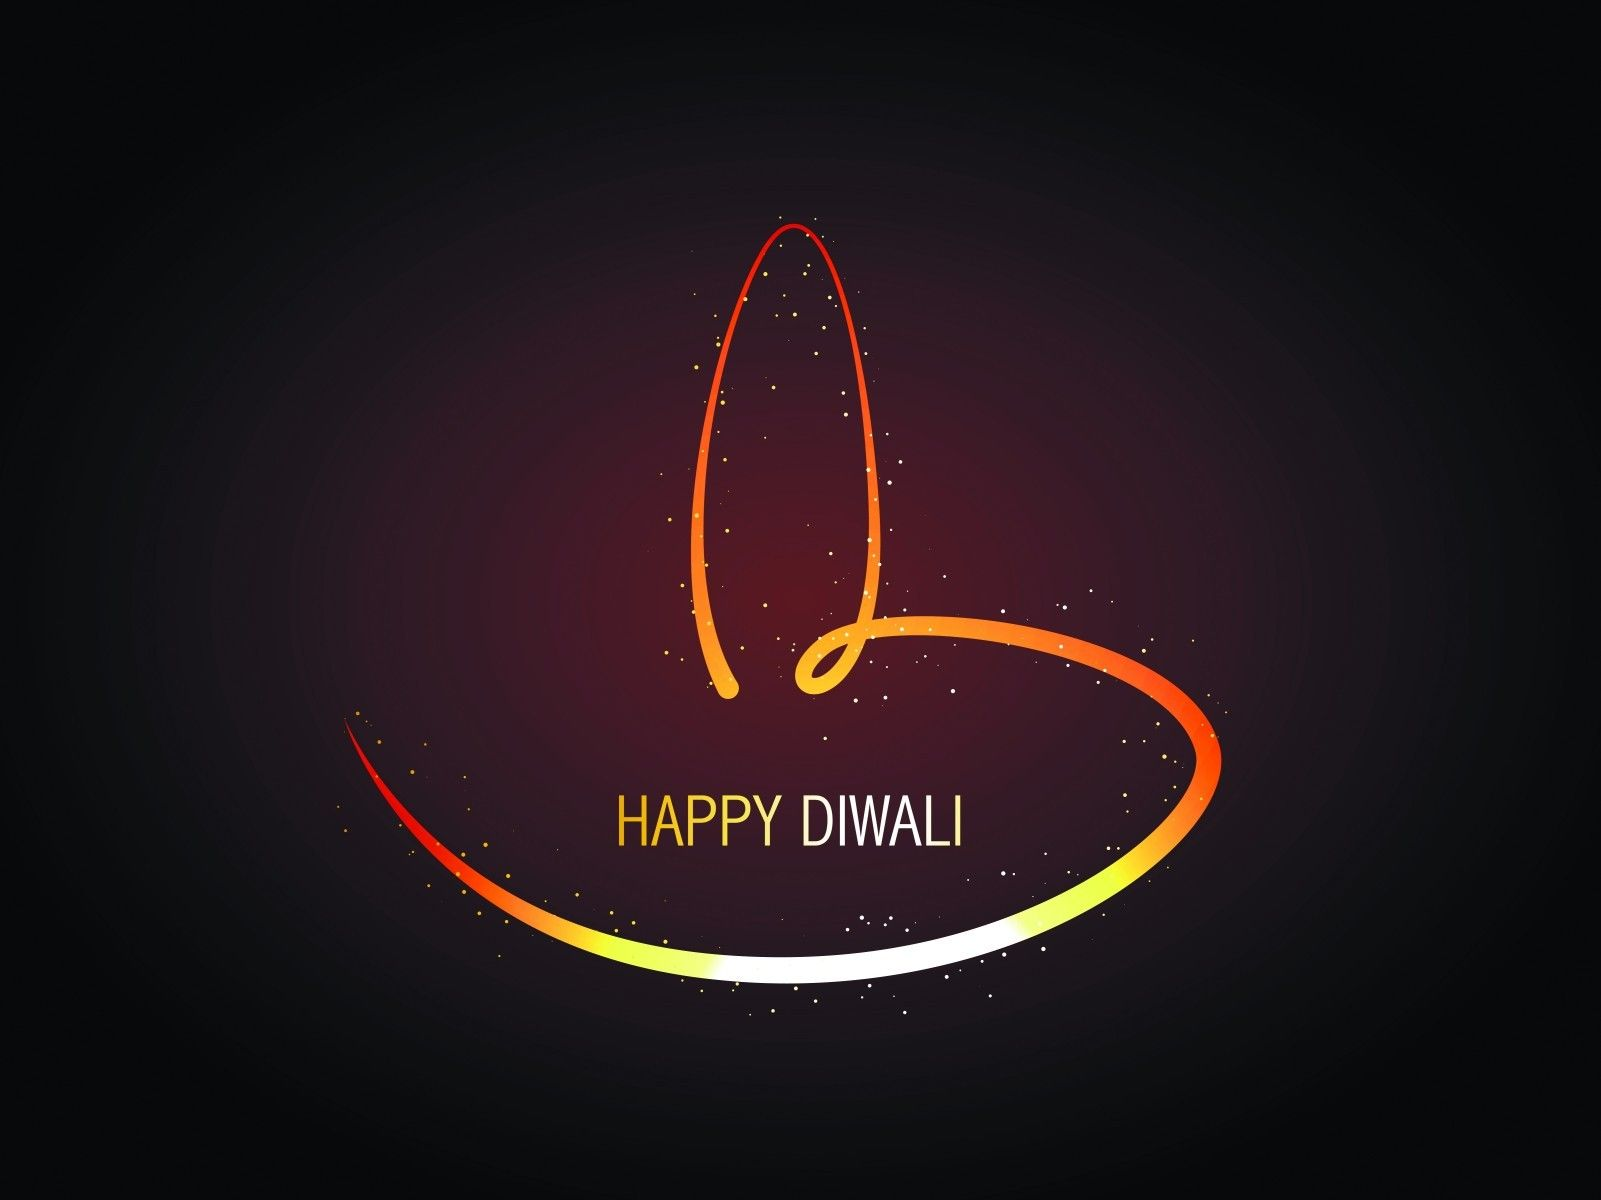 Diwali Background Google Search Misc Pinterest Diwali Happy